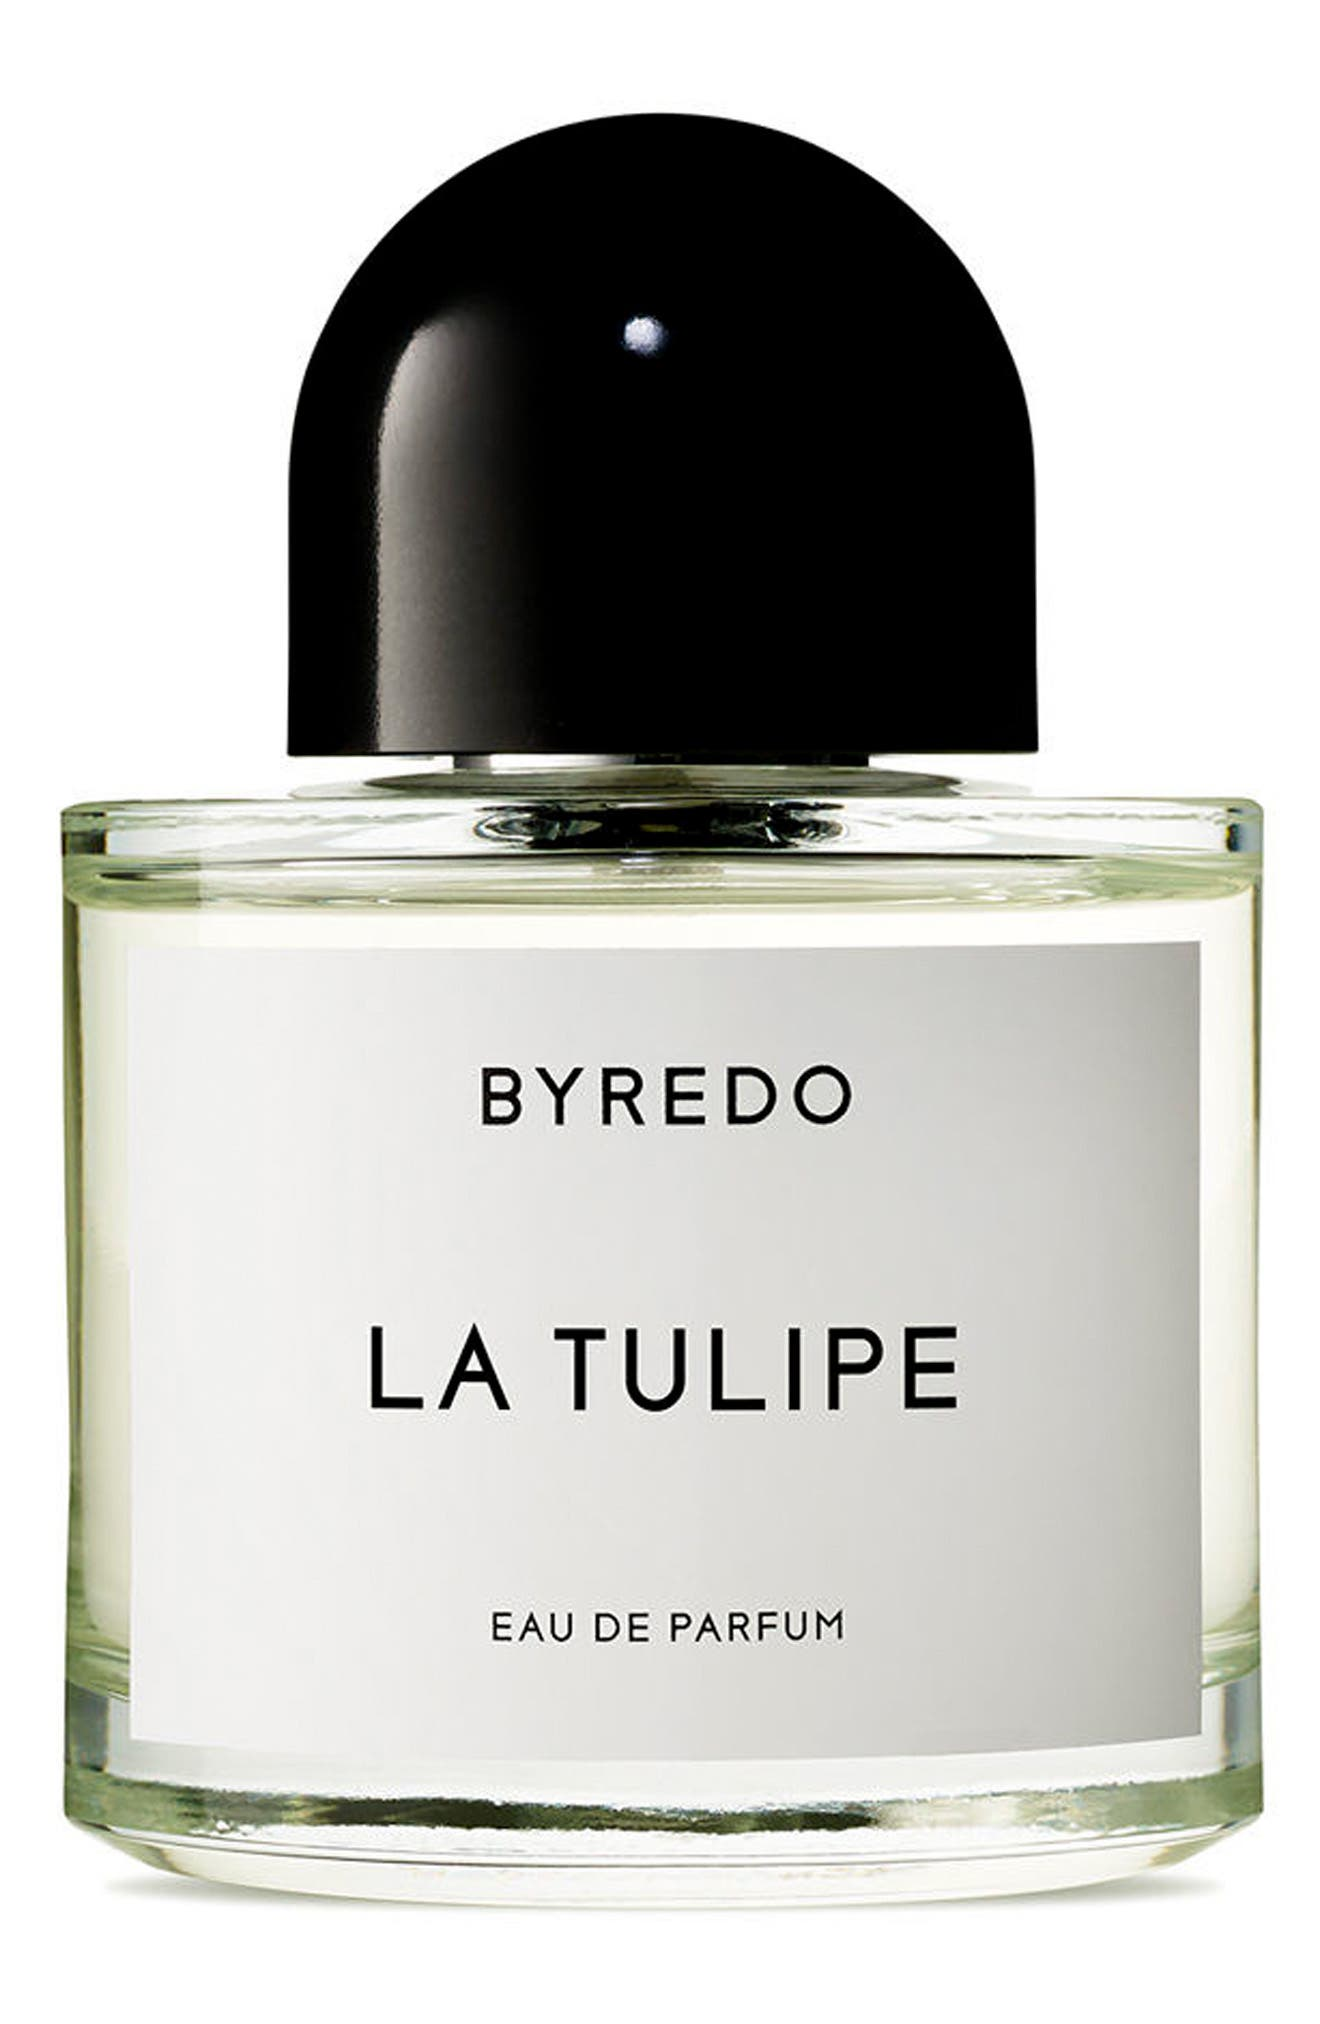 La Tulipe Eau de Parfum,                             Main thumbnail 2, color,                             No Color